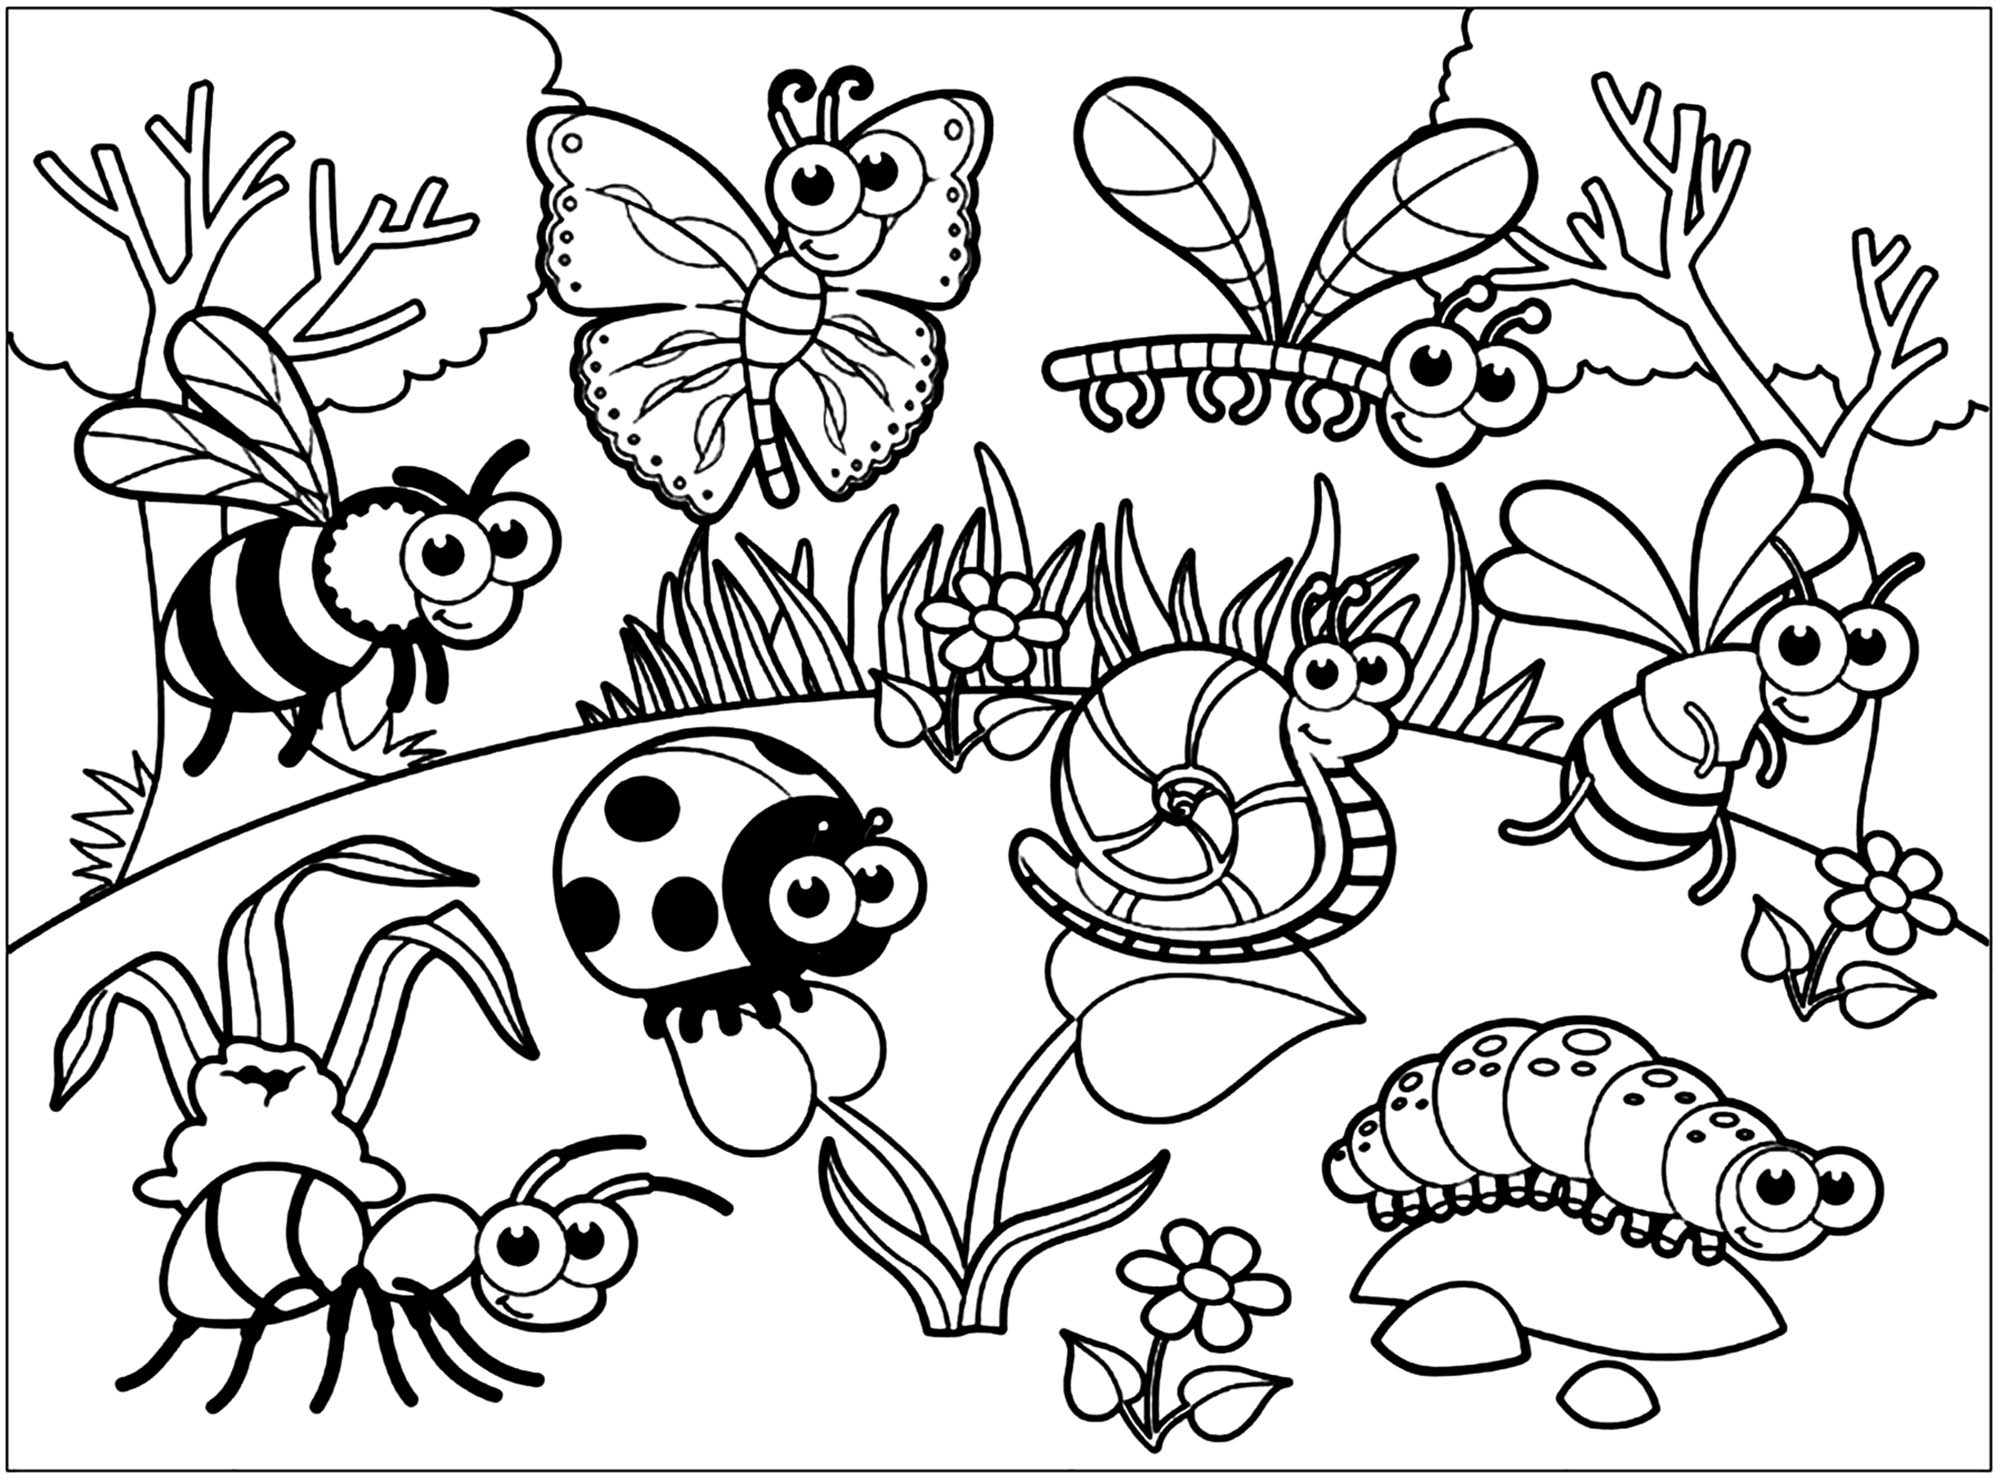 Diverses insects drawn in a cartoon and childish style